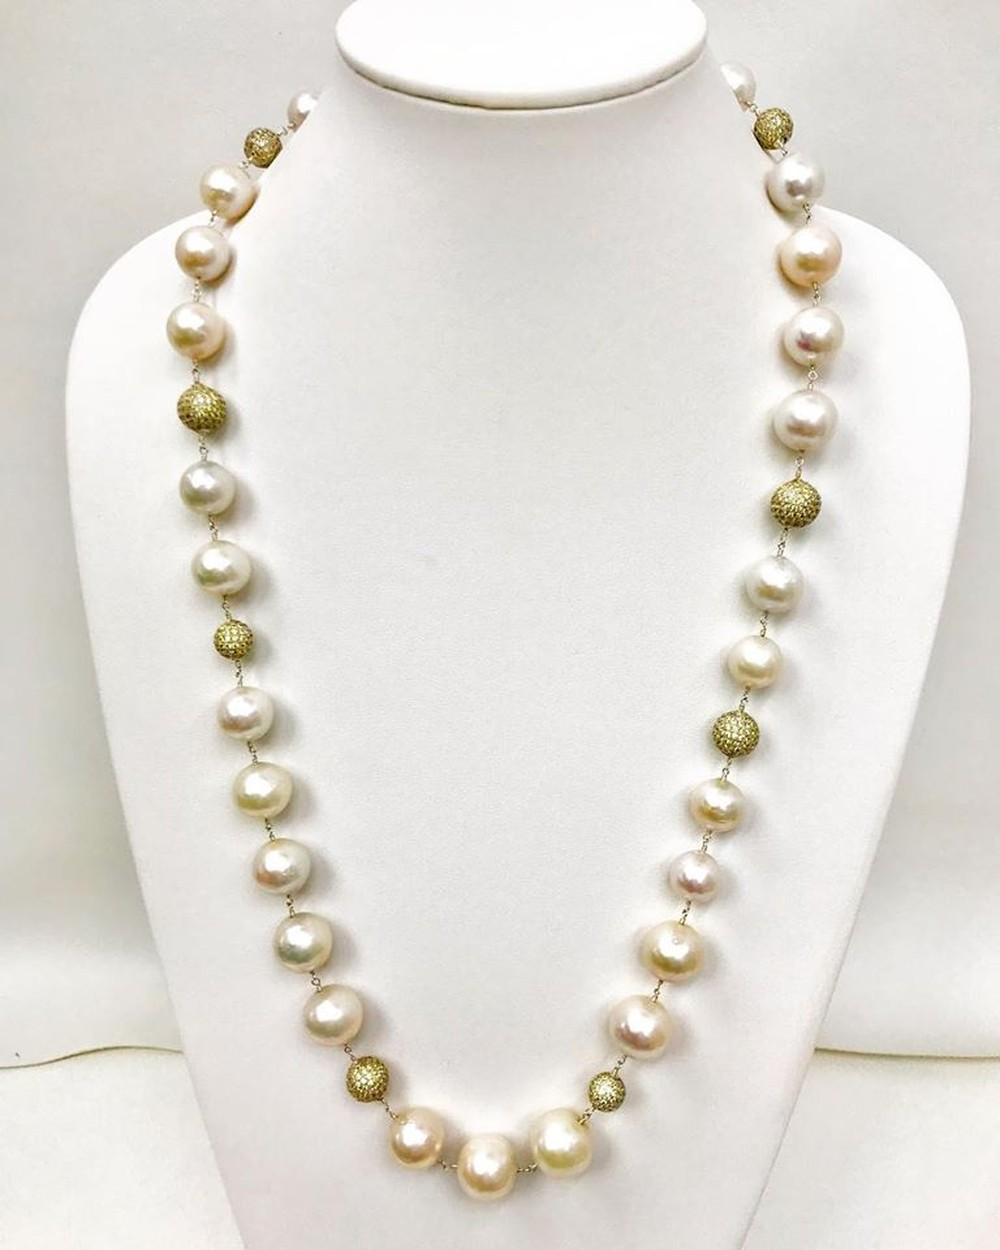 Jumbo Pearl and Yellow Quartz Sterling Silver Necklace